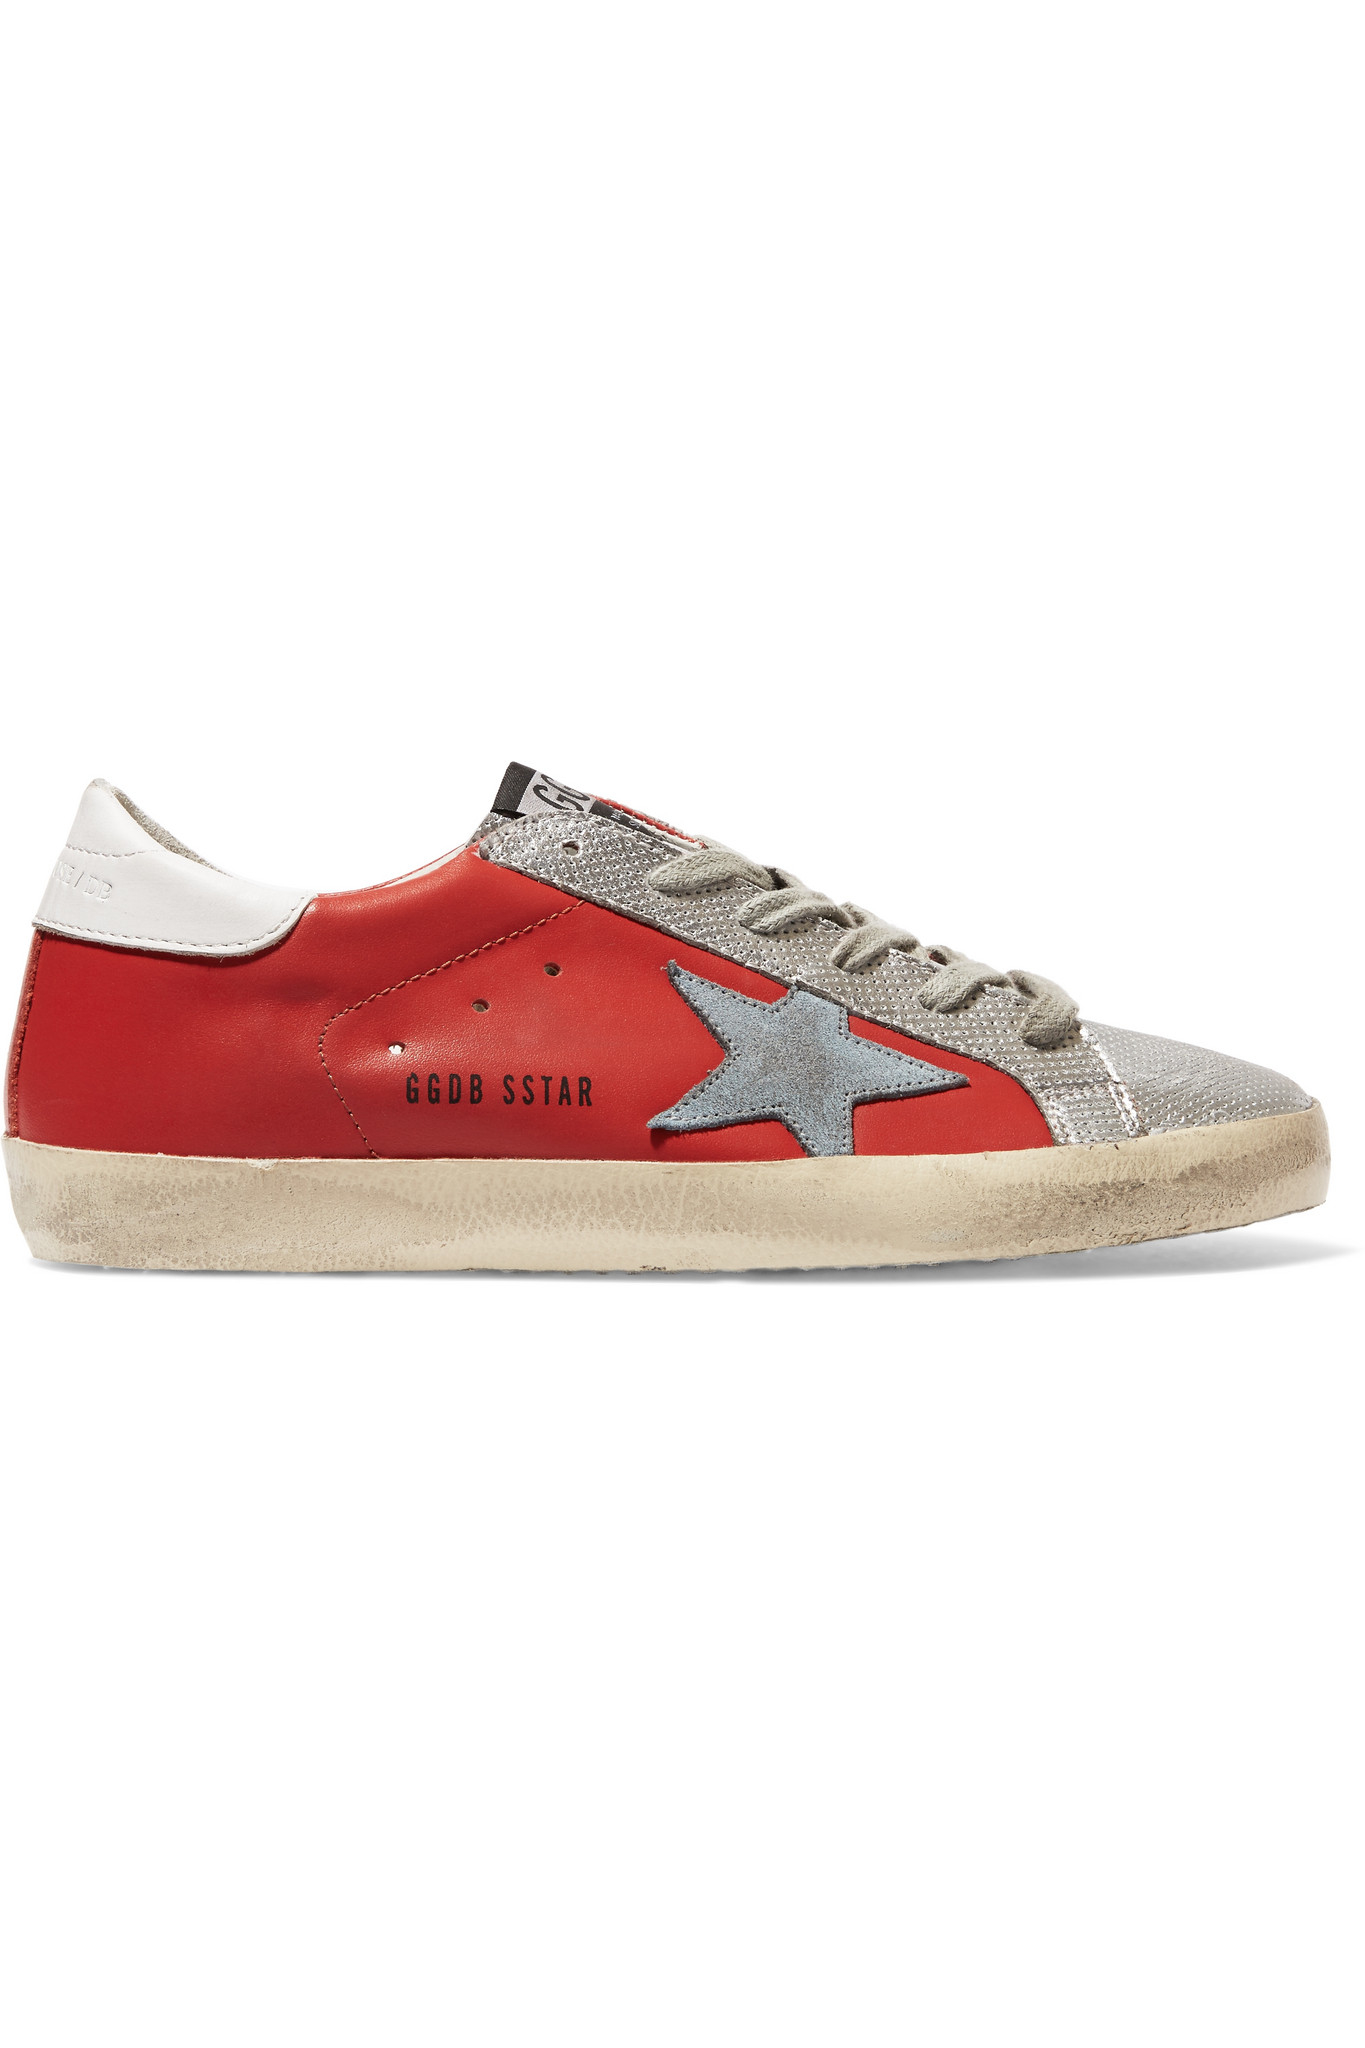 Superstar Distressed Metallic And Patent-leather Sneakers - Black Golden Goose dGeklQgQb